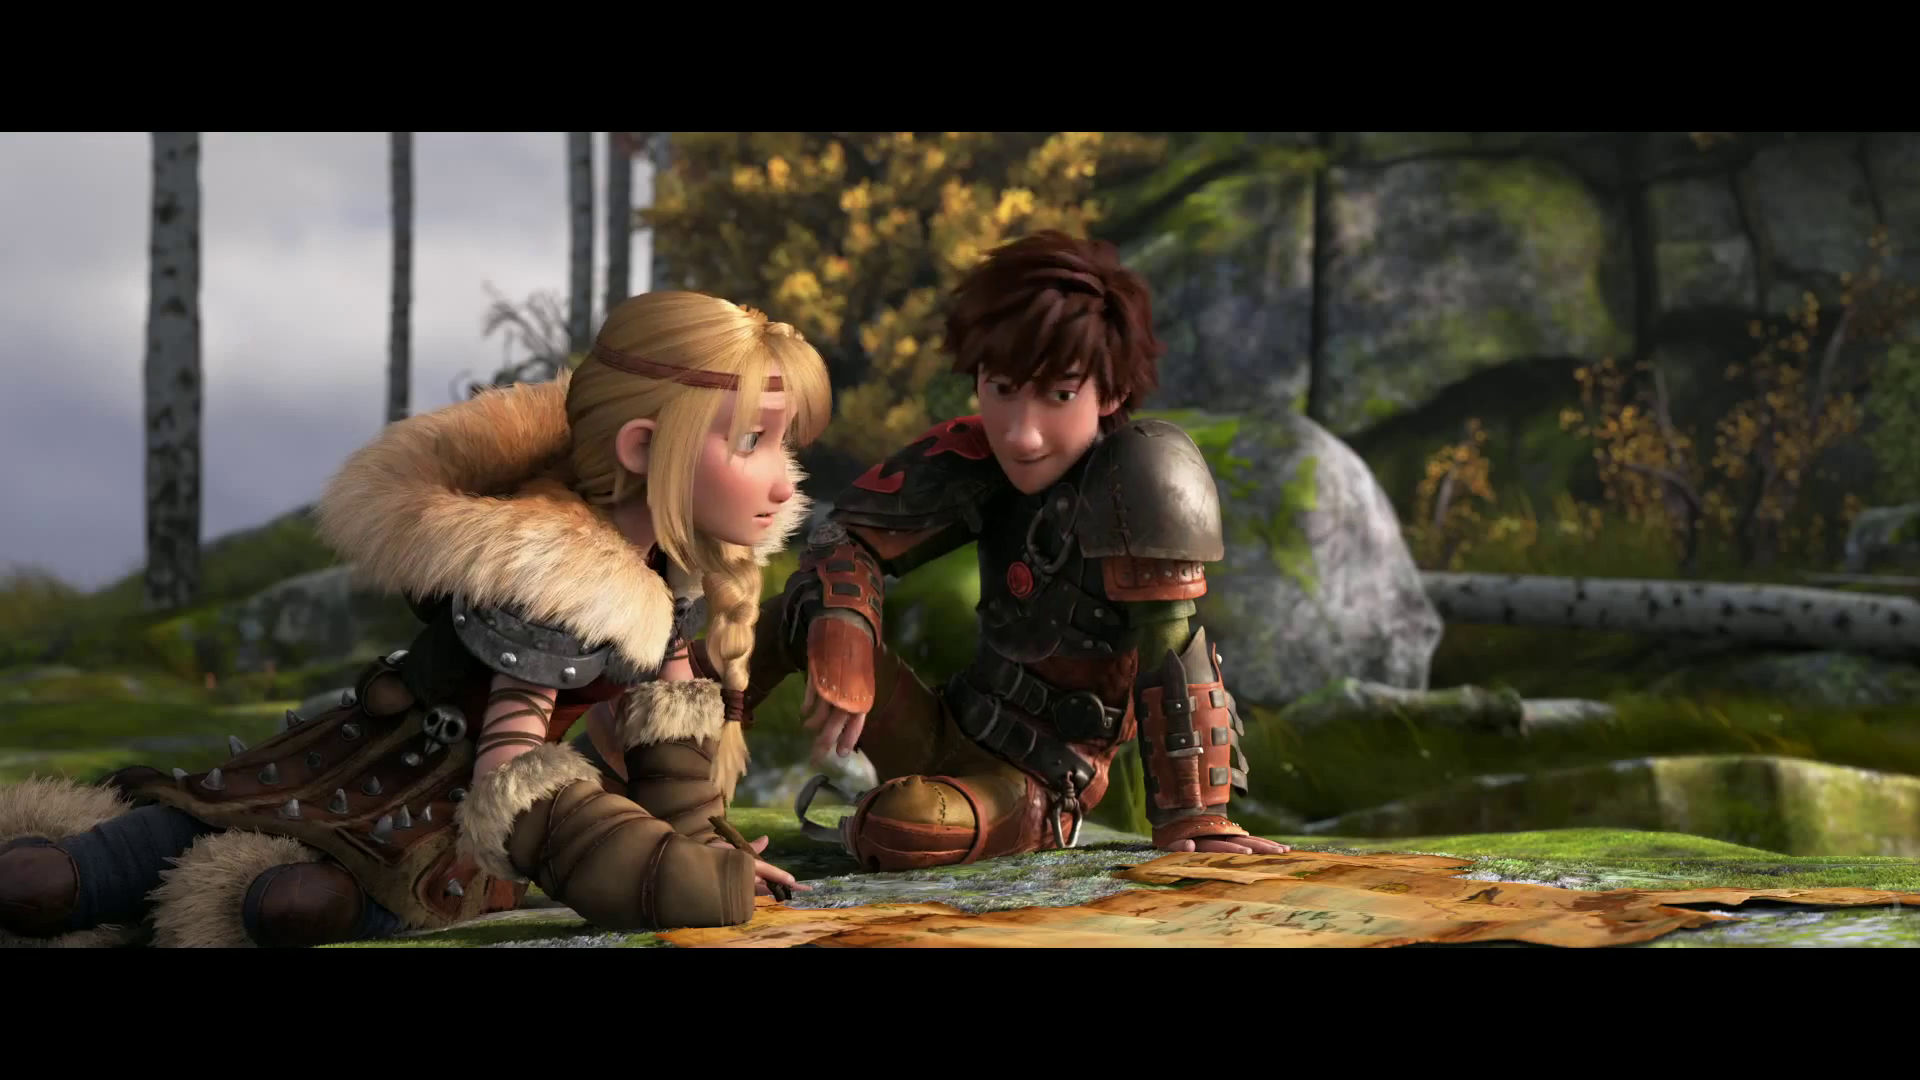 astrid and hiccup relationship quiz